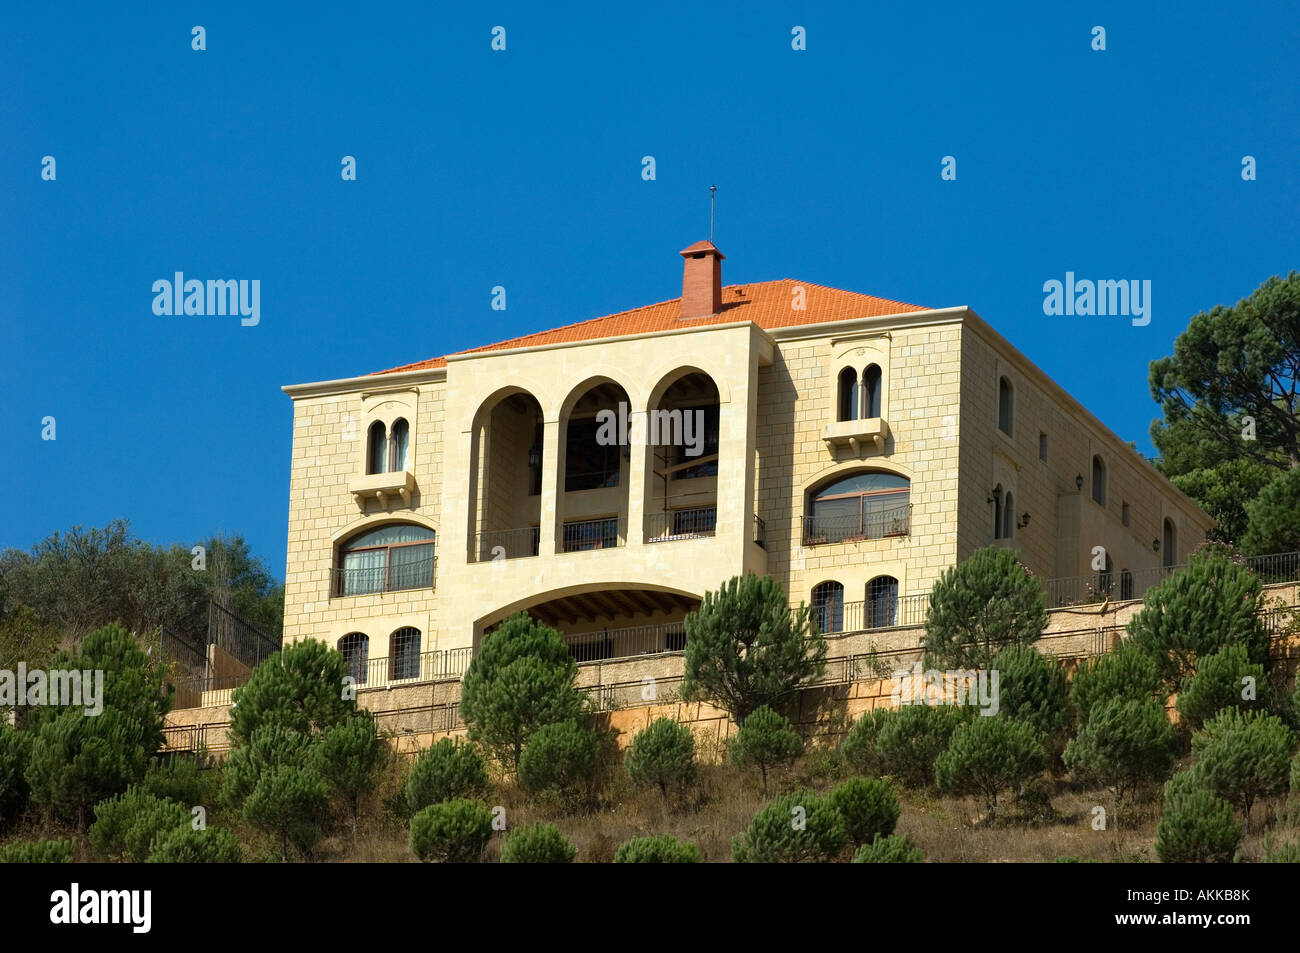 Clay pitched roof villa in mount lebanon stock photo for Modern house lebanon